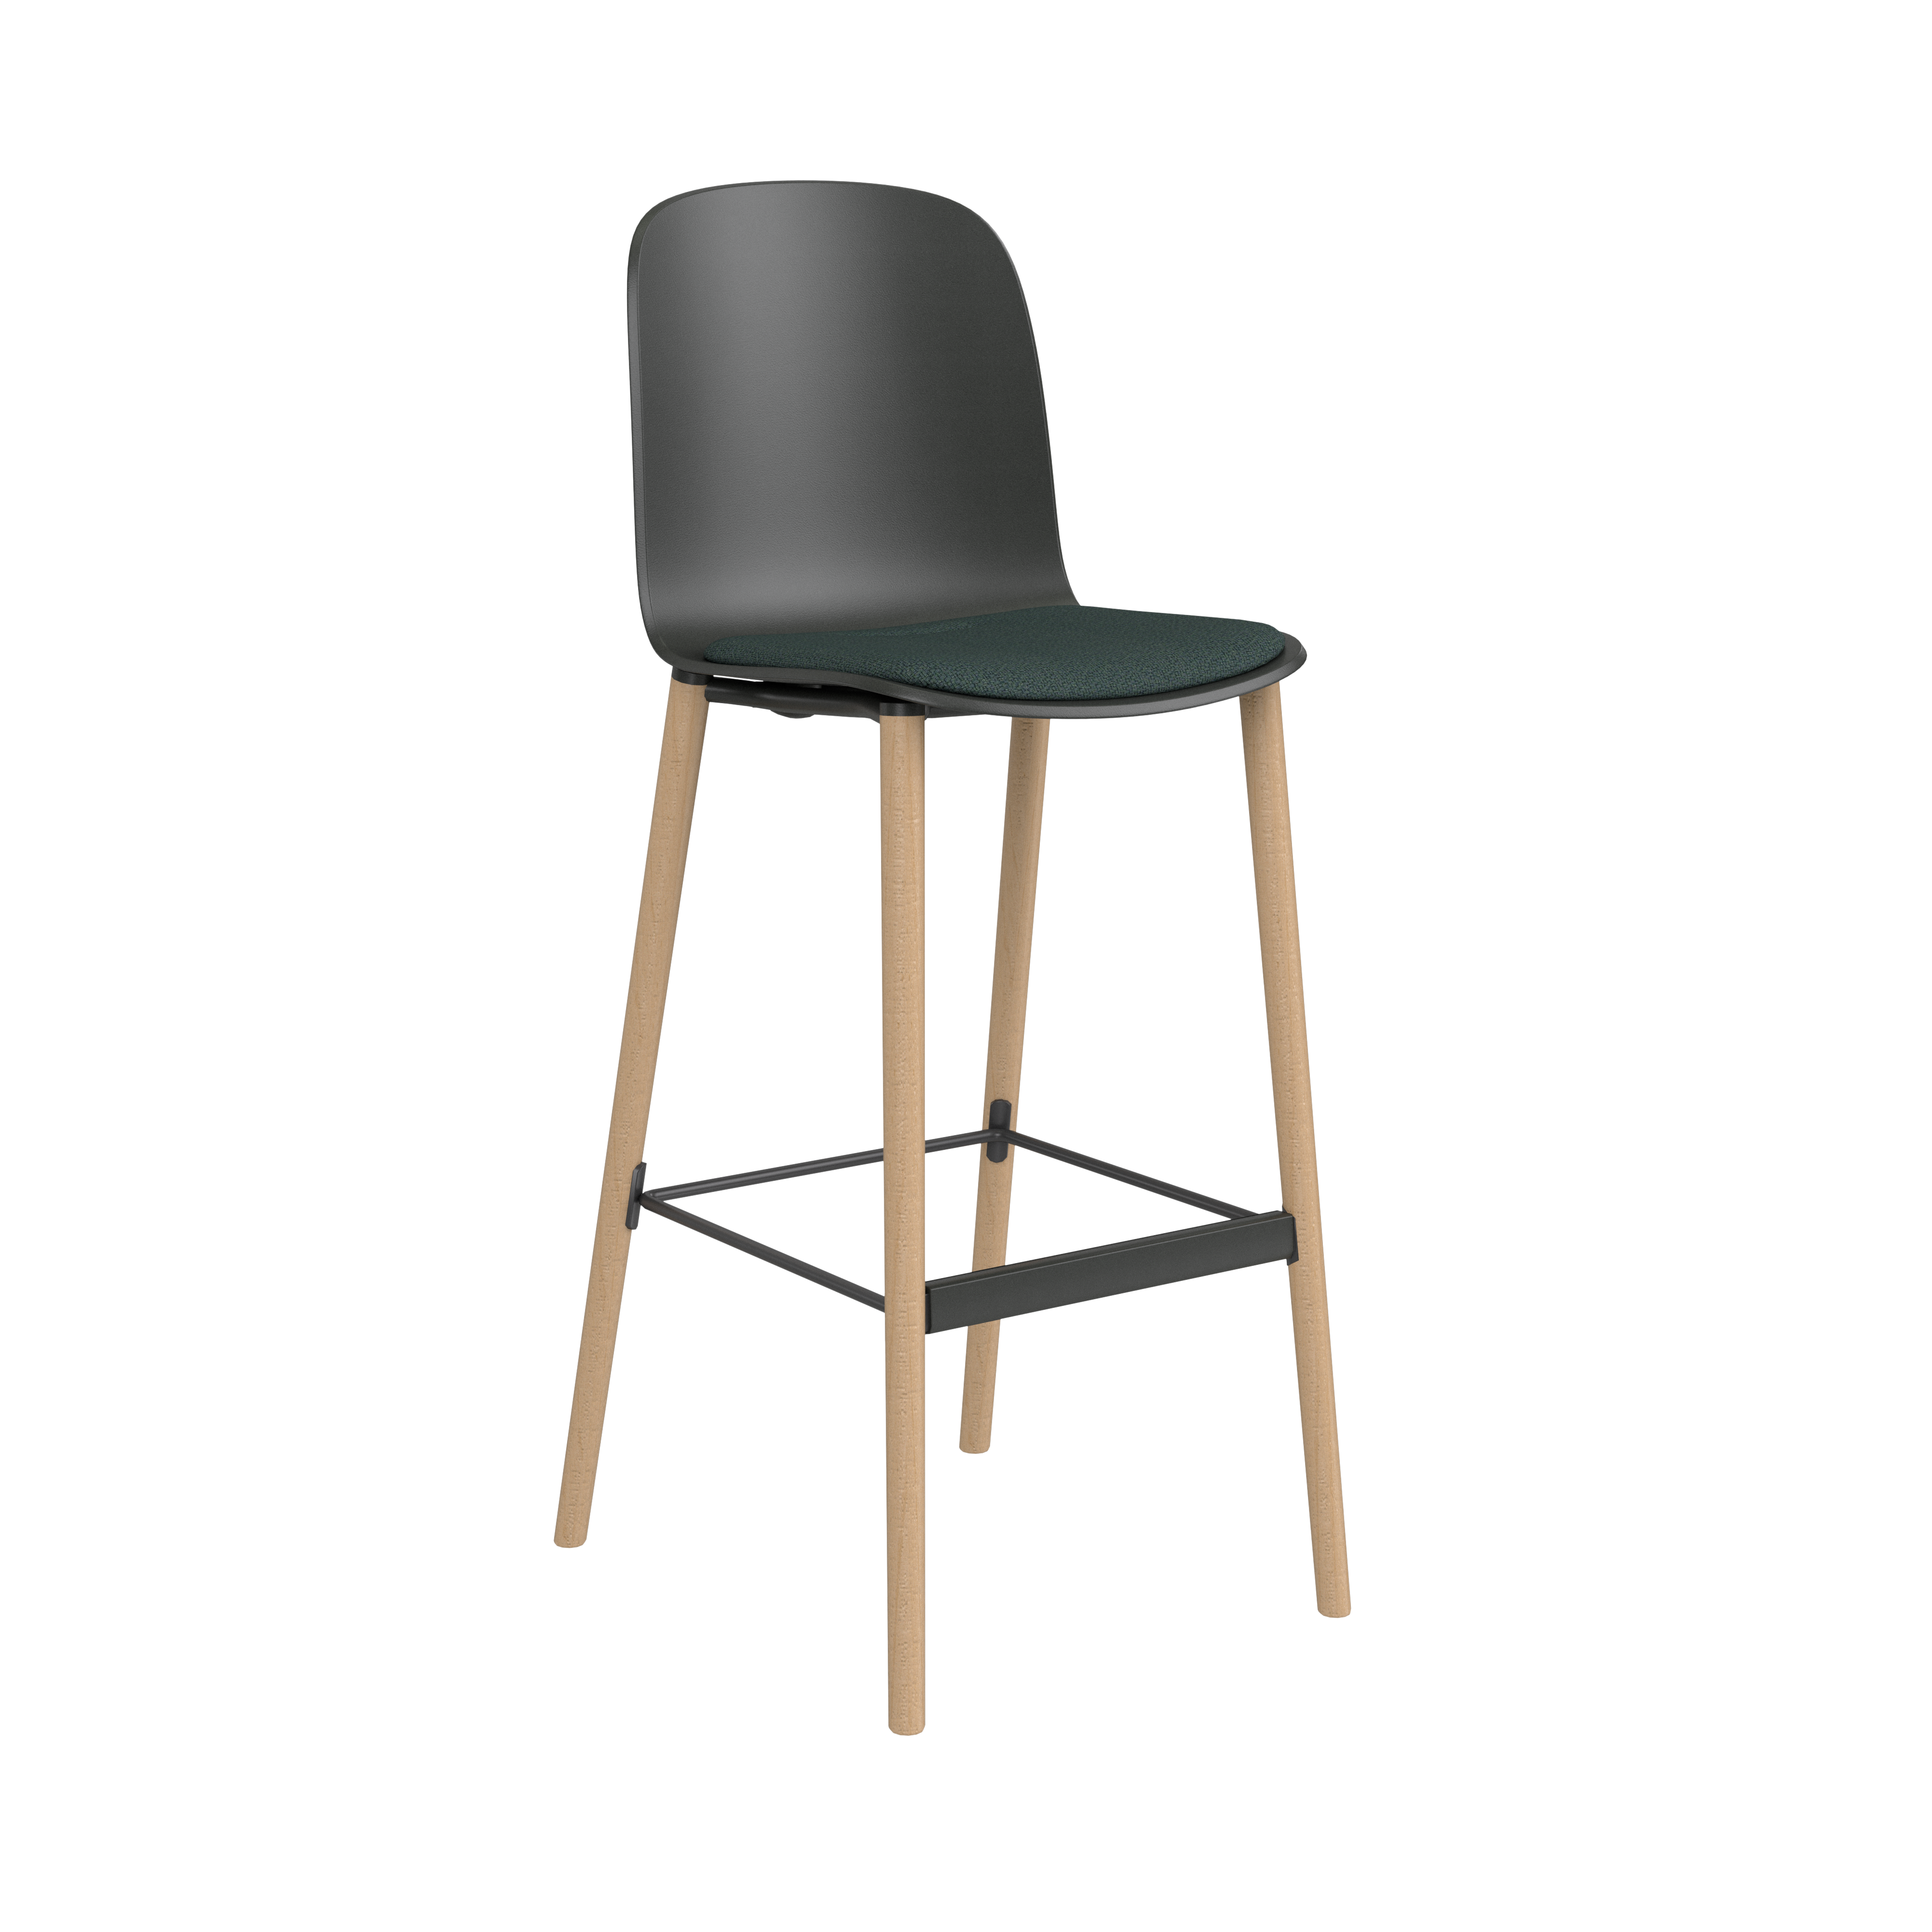 Tabouret de bar Cavatina de Steelcase 03